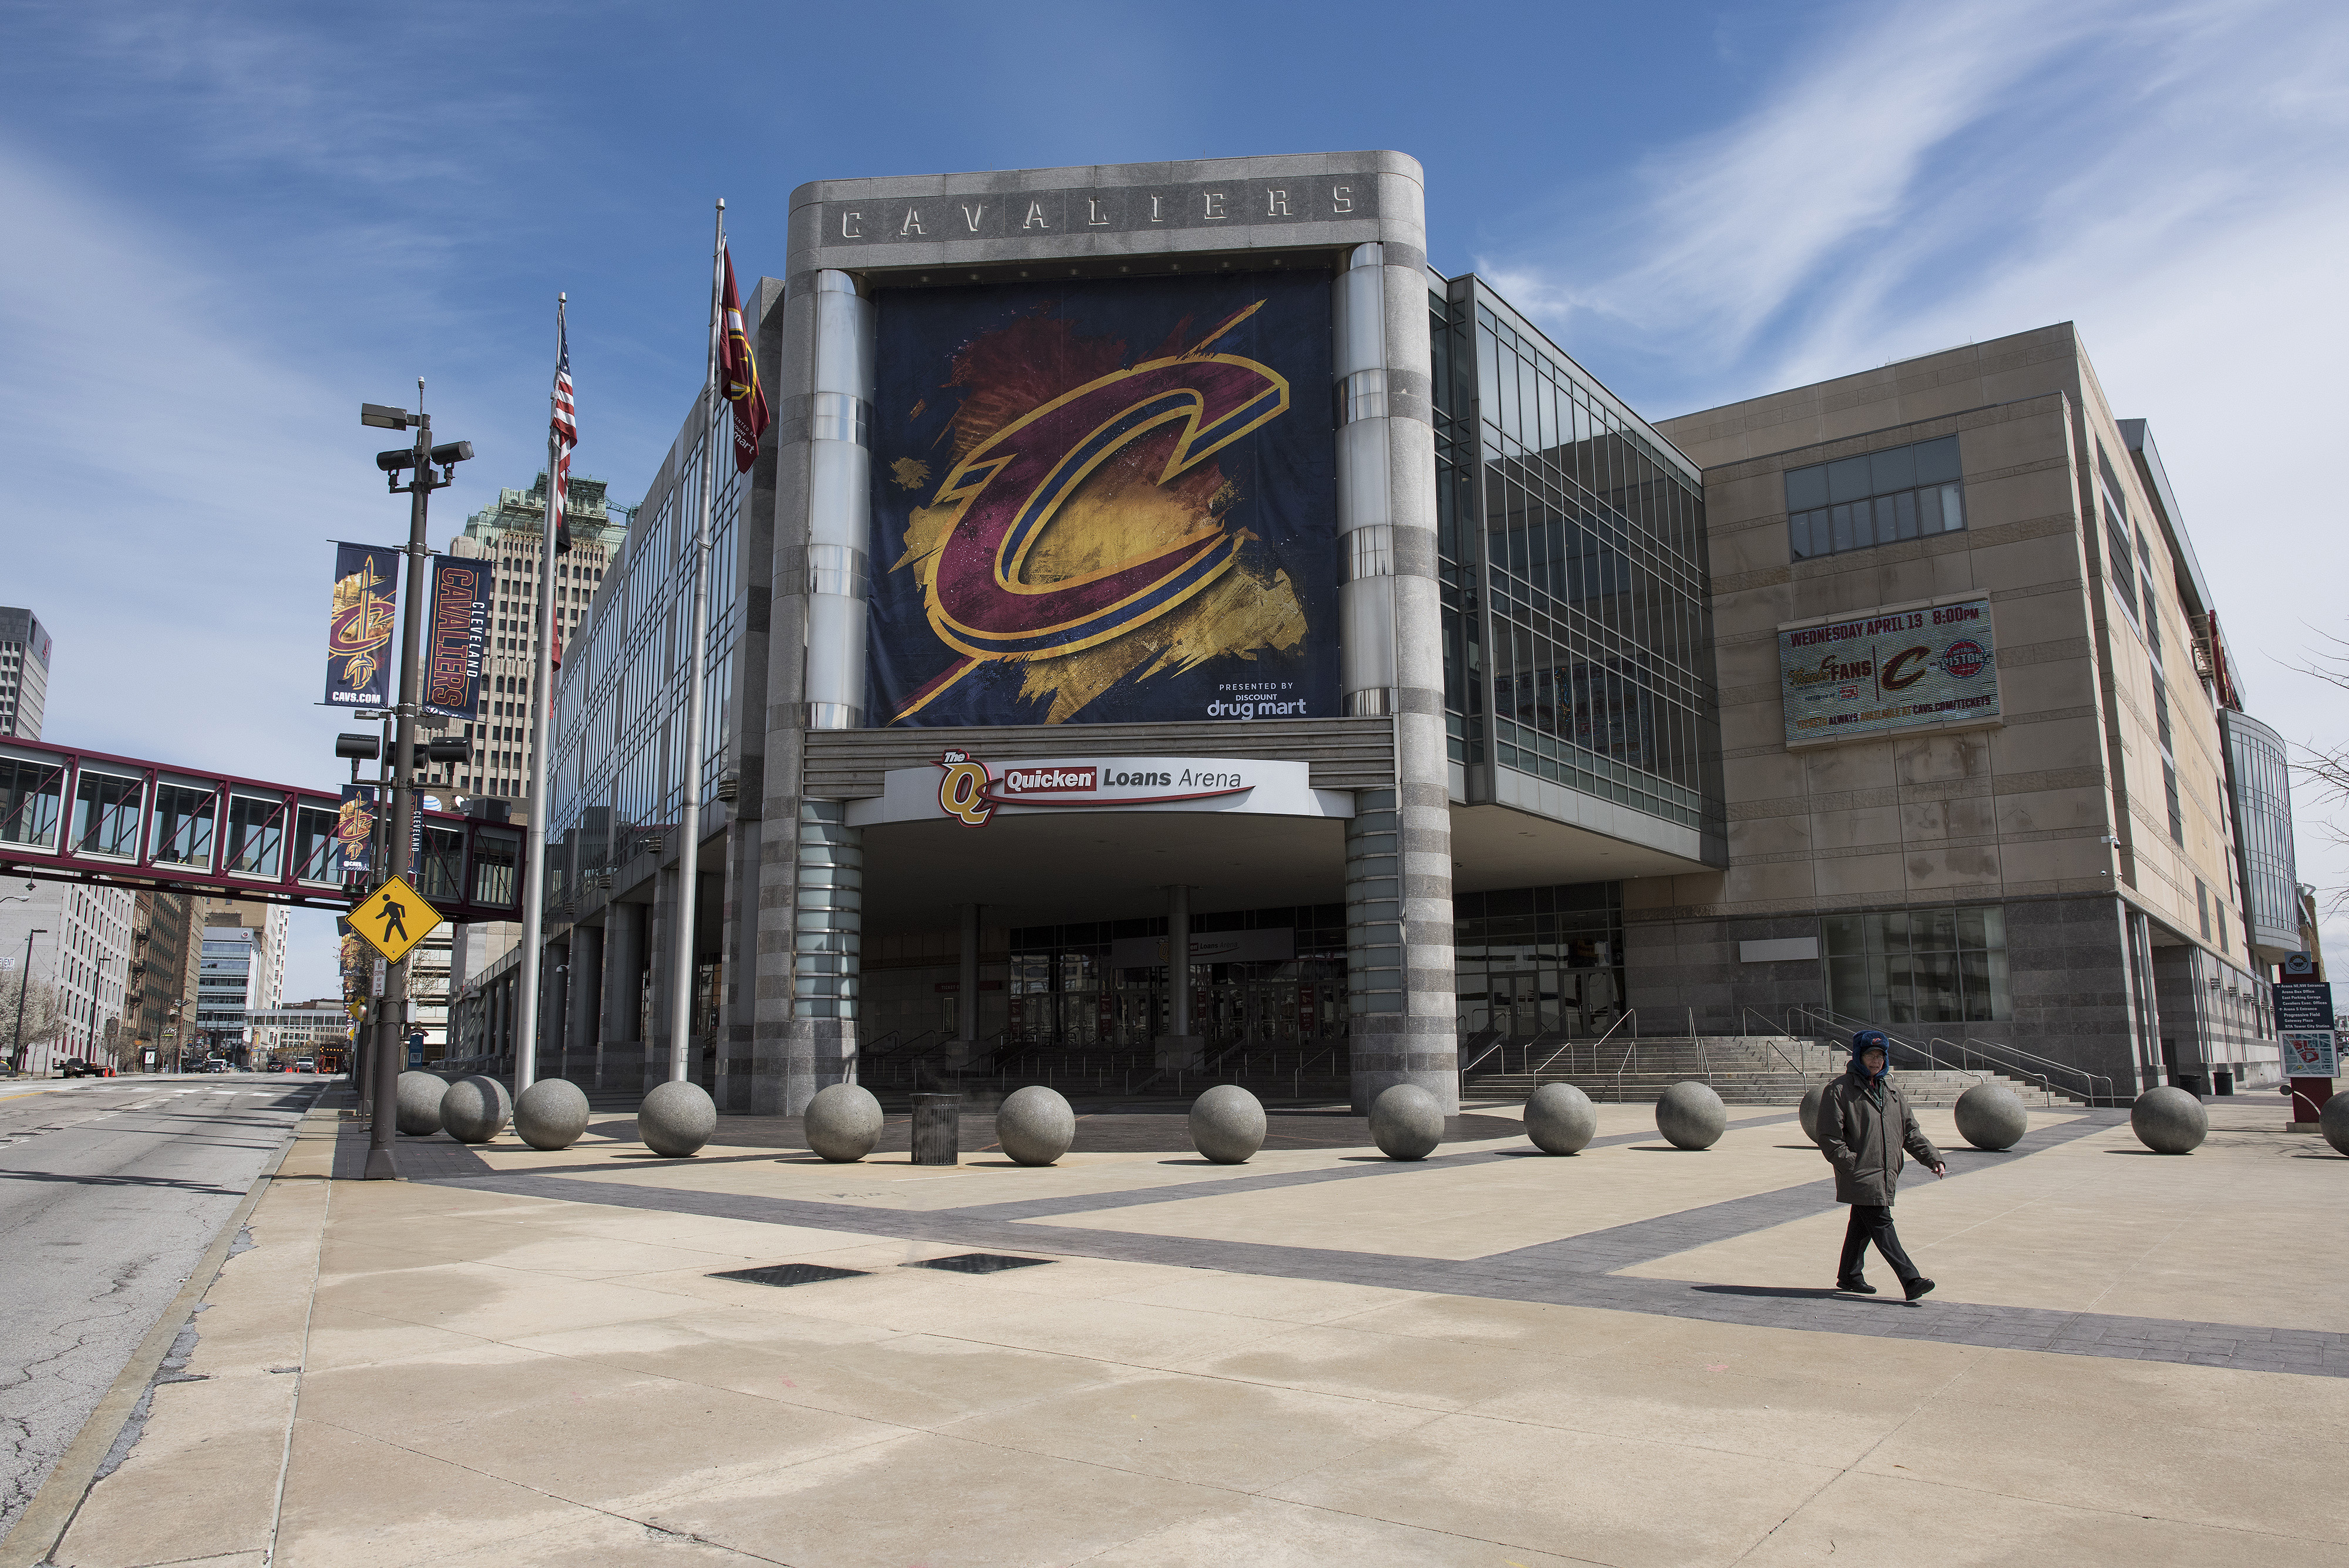 Seating charts quicken loans arena official website - Kanye West At Quicken Loans Arena October 1 2016 Cbs Cleveland